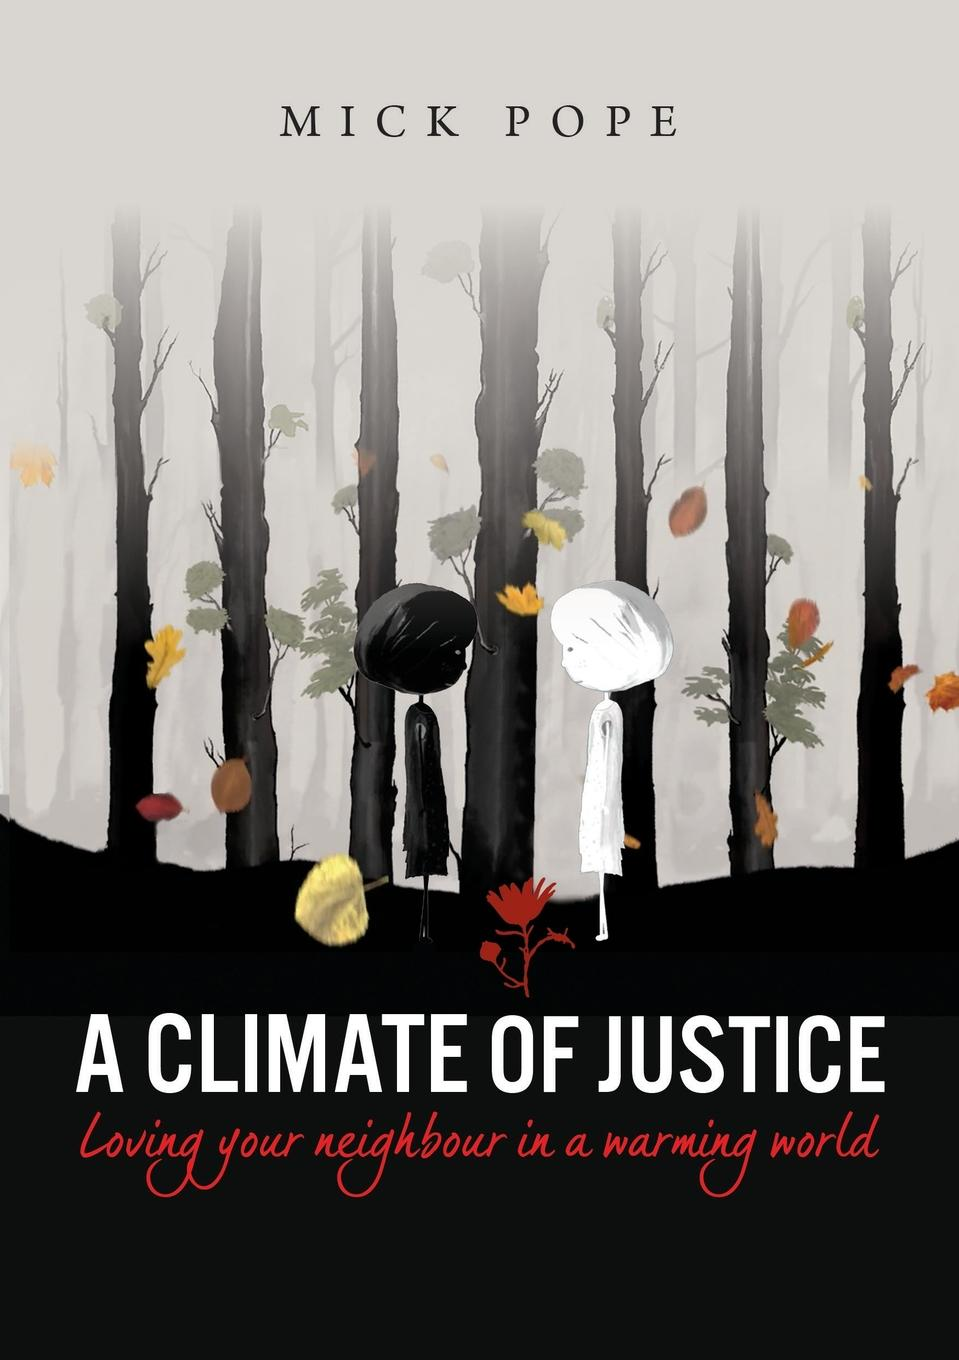 Mick Pope A Climate of Justice. Loving your neighbour in a warming world